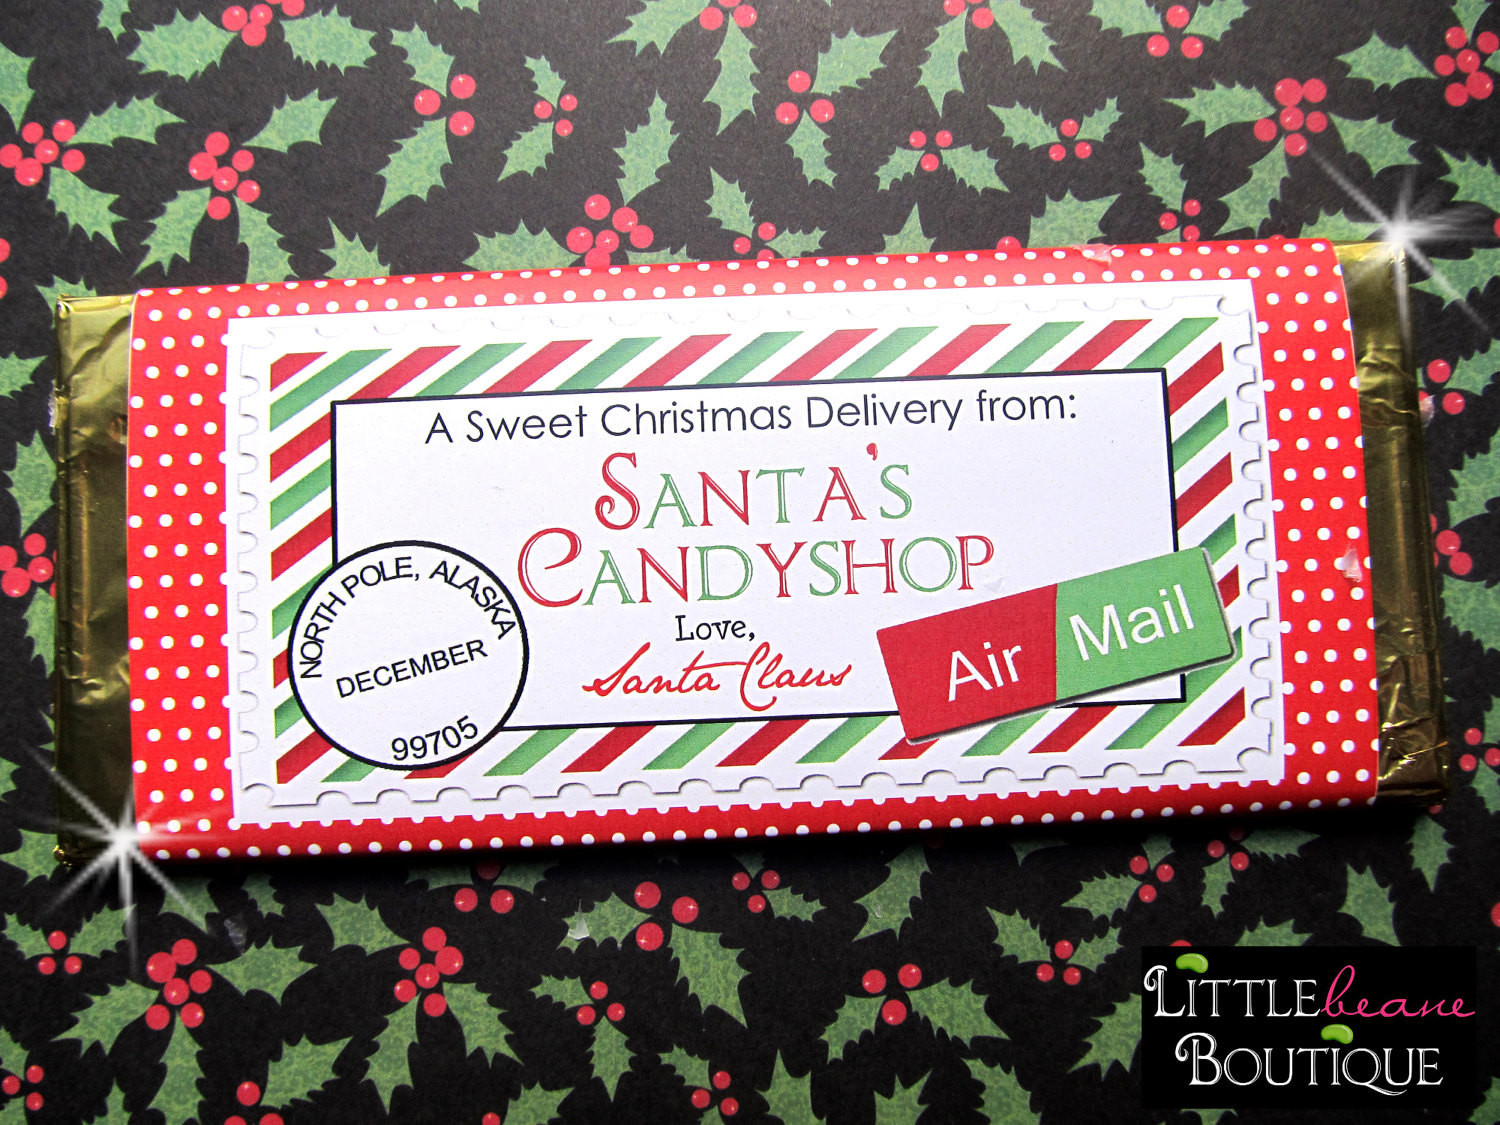 Free Printable Christmas Candy Bar Wrappers  Printable Christmas Candy Bar Wrappers DIY Holiday